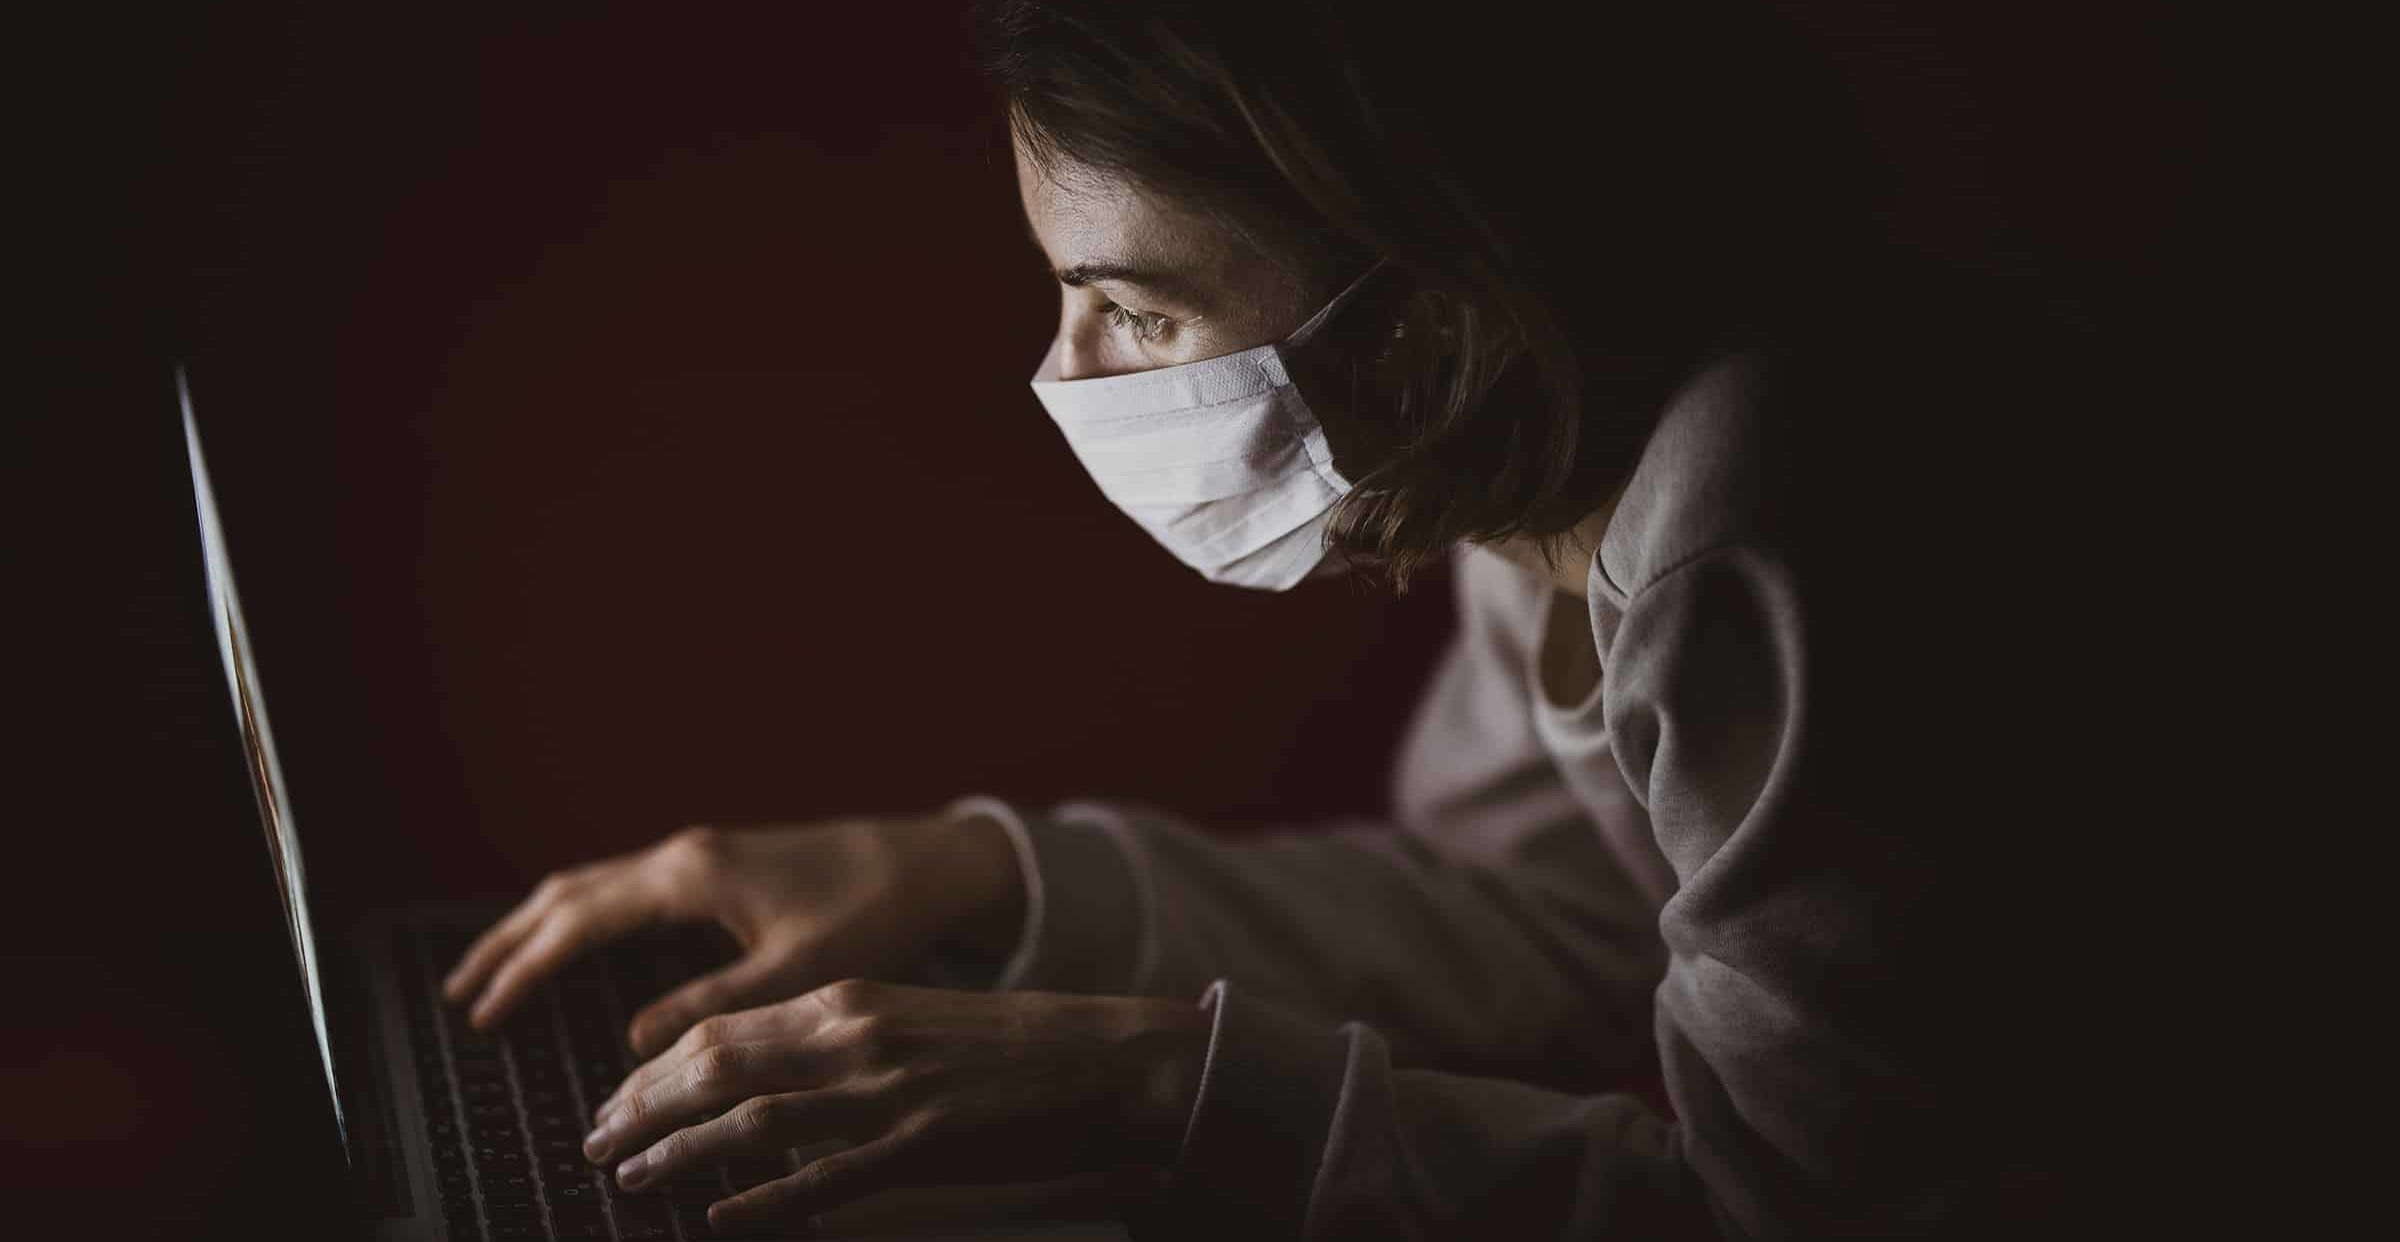 A woman wearing a face mask types on a laptop computer